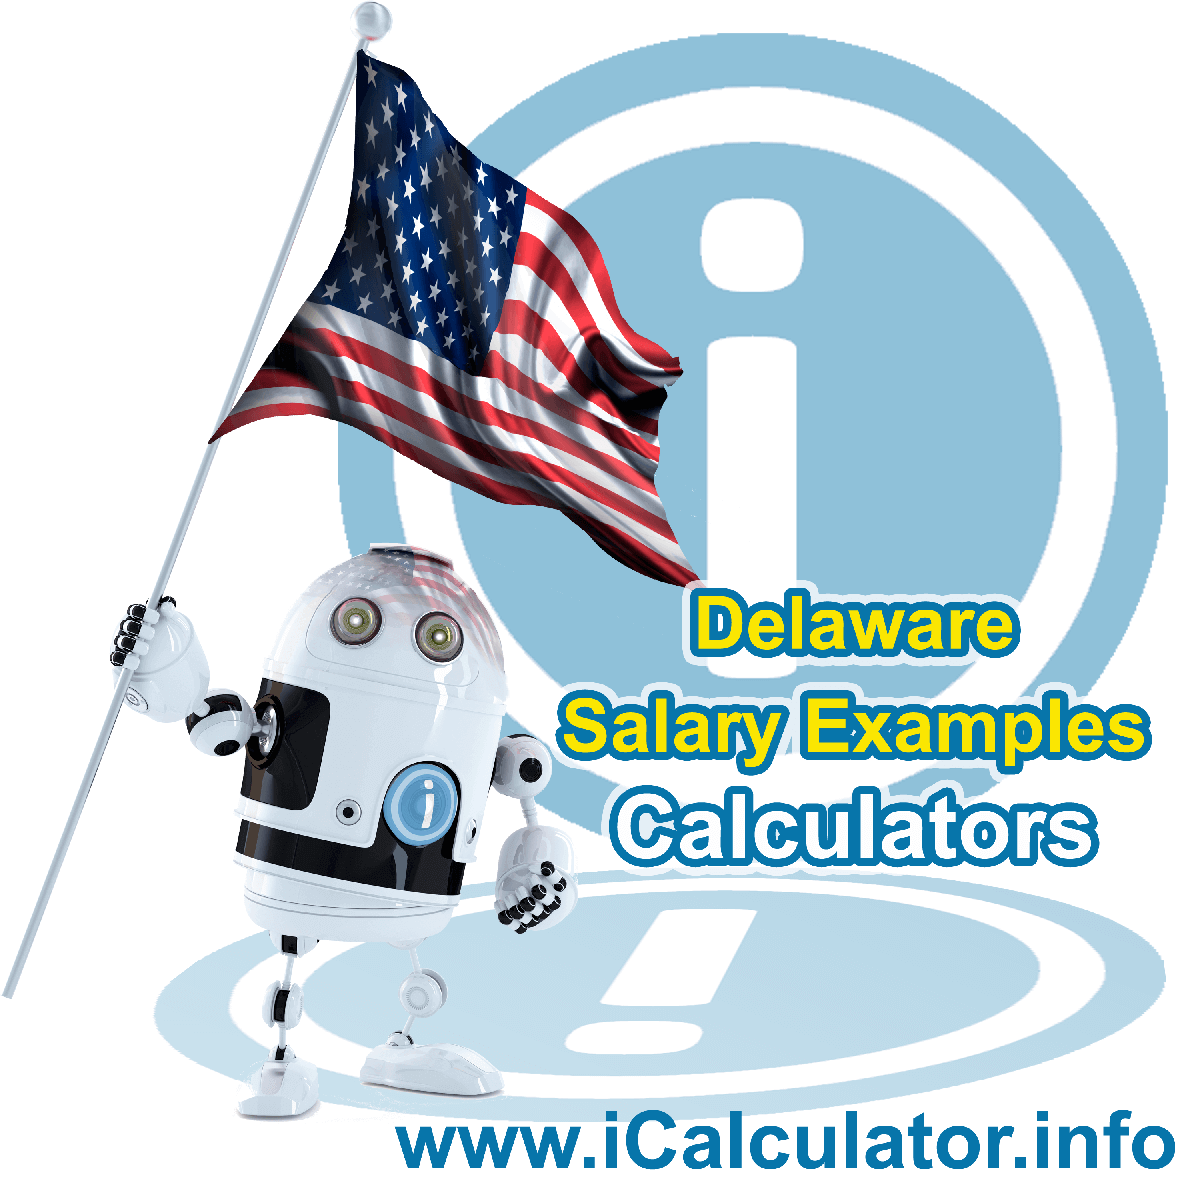 Delaware Salary Example for $20,000.00 in 2020 | iCalculator | $20,000.00 salary example for employee and employer paying Delaware State tincome taxes. Detailed salary after tax calculation including Delaware State Tax, Federal State Tax, Medicare Deductions, Social Security, Capital Gains and other income tax and salary deductions complete with supporting Delaware state tax tables